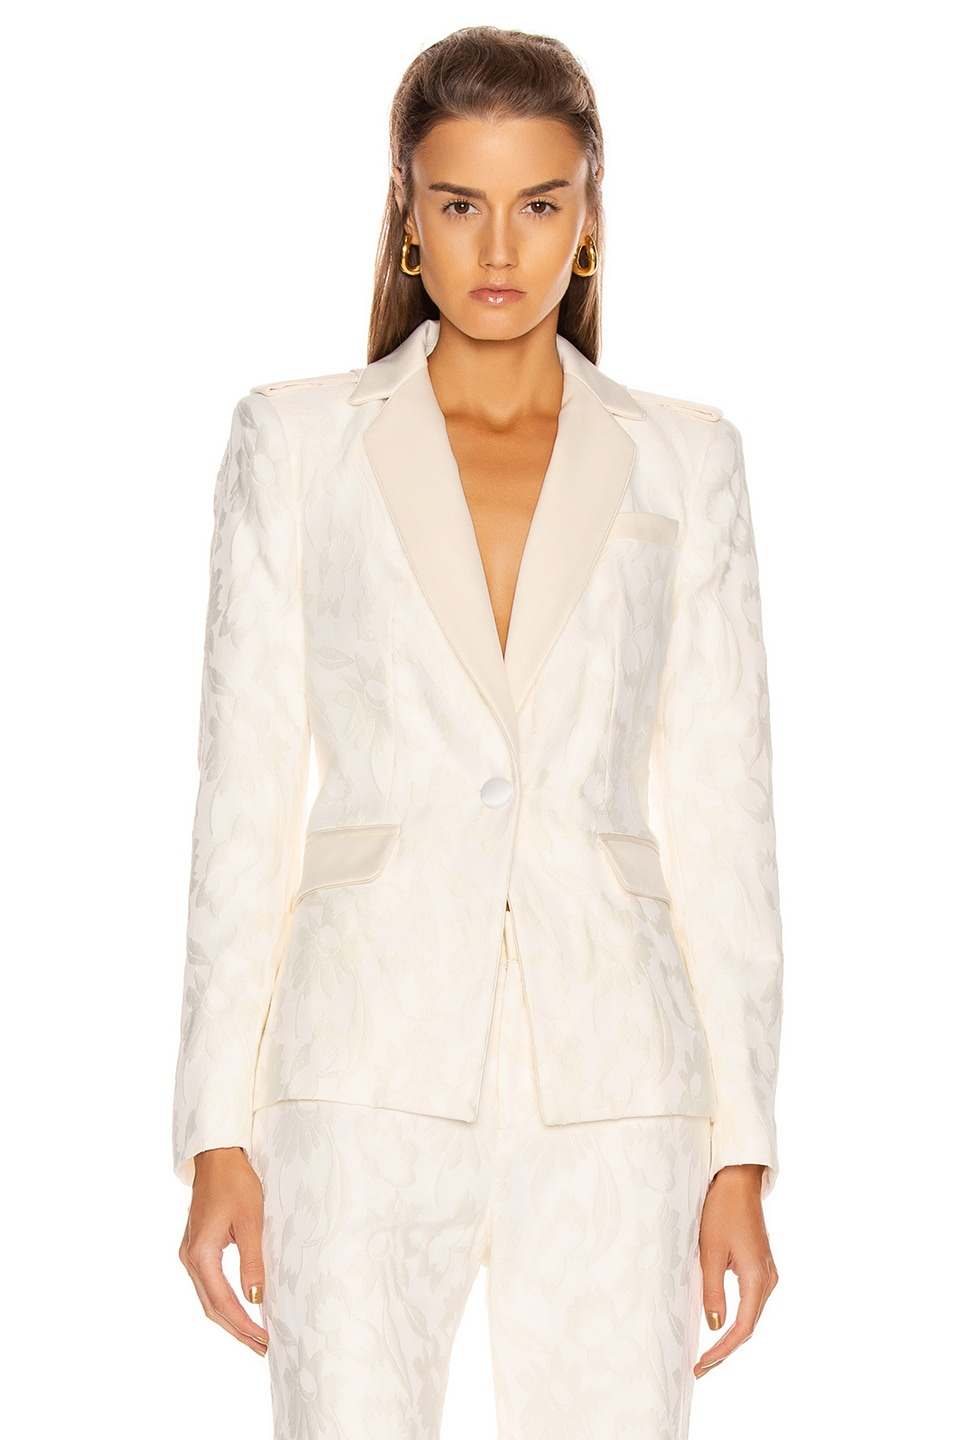 Image 1 of Alexis Claudya Jacket in White Floral Jacquard